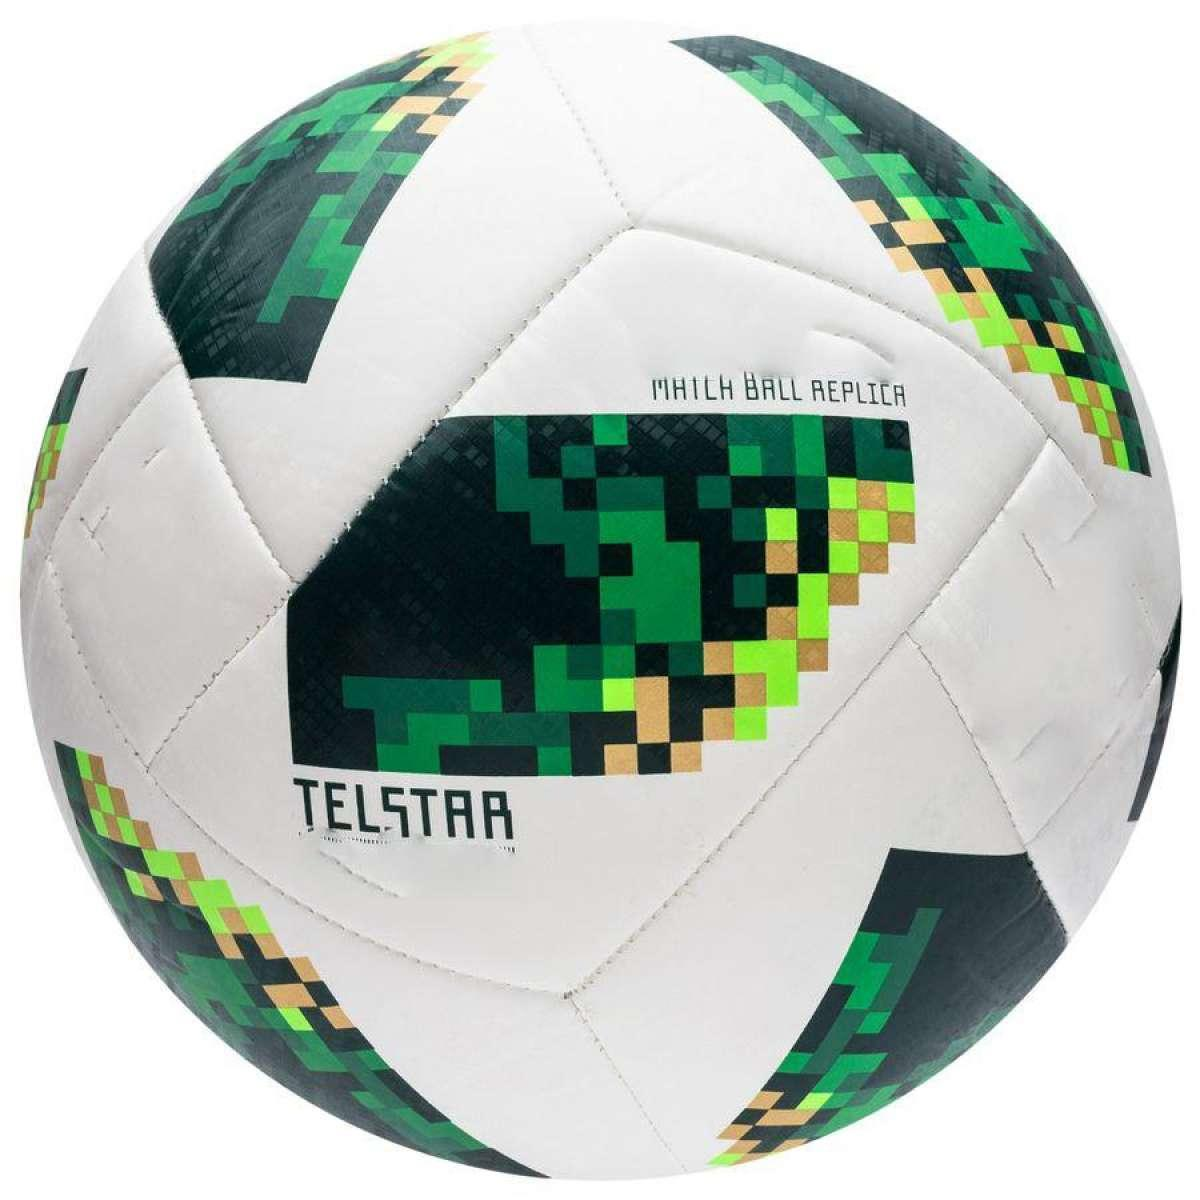 85e07087a4c High Quality Match Football Soccerball for Professional Playing (Size 5)